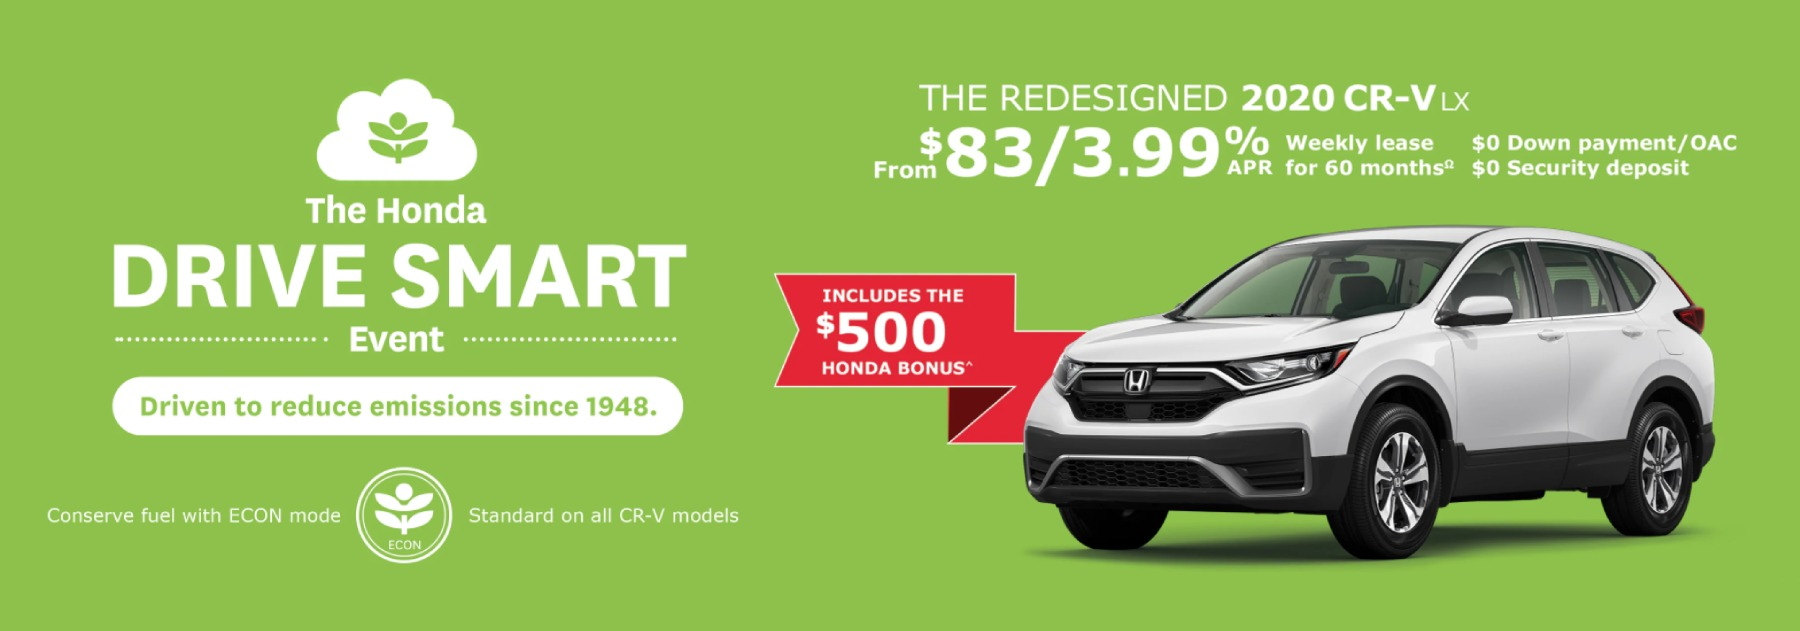 April 2020 Crv Offer